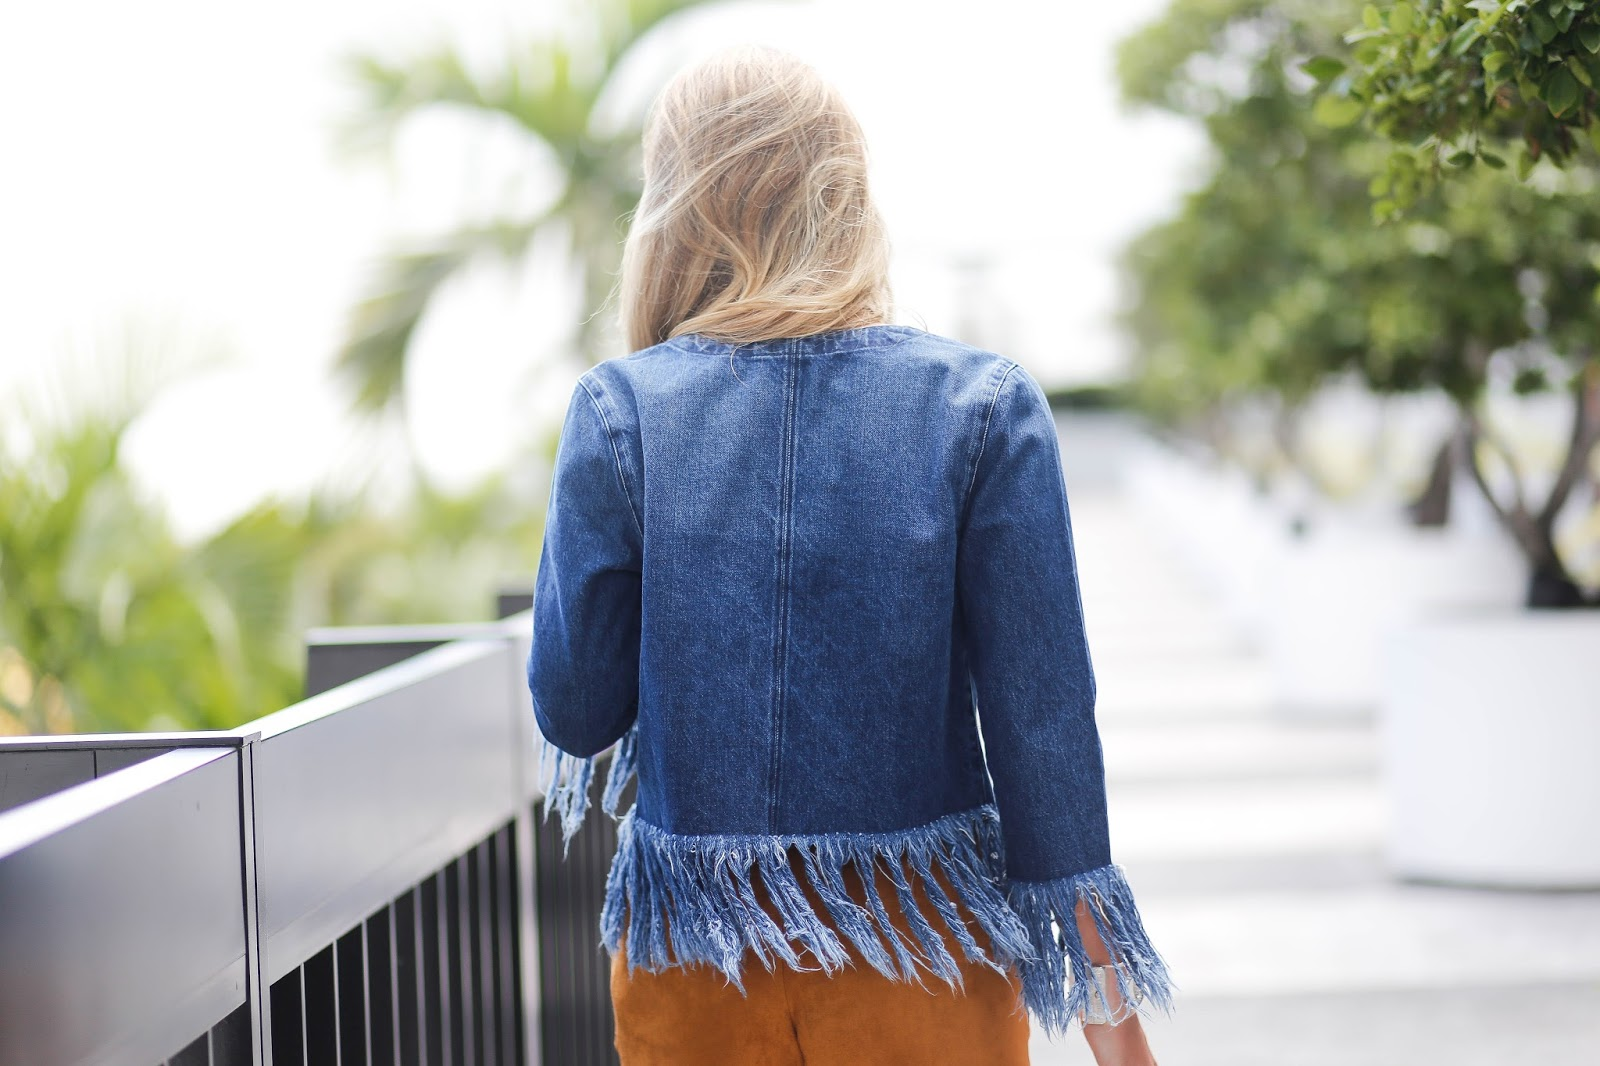 3x1 denim jacket, dressed for dreams